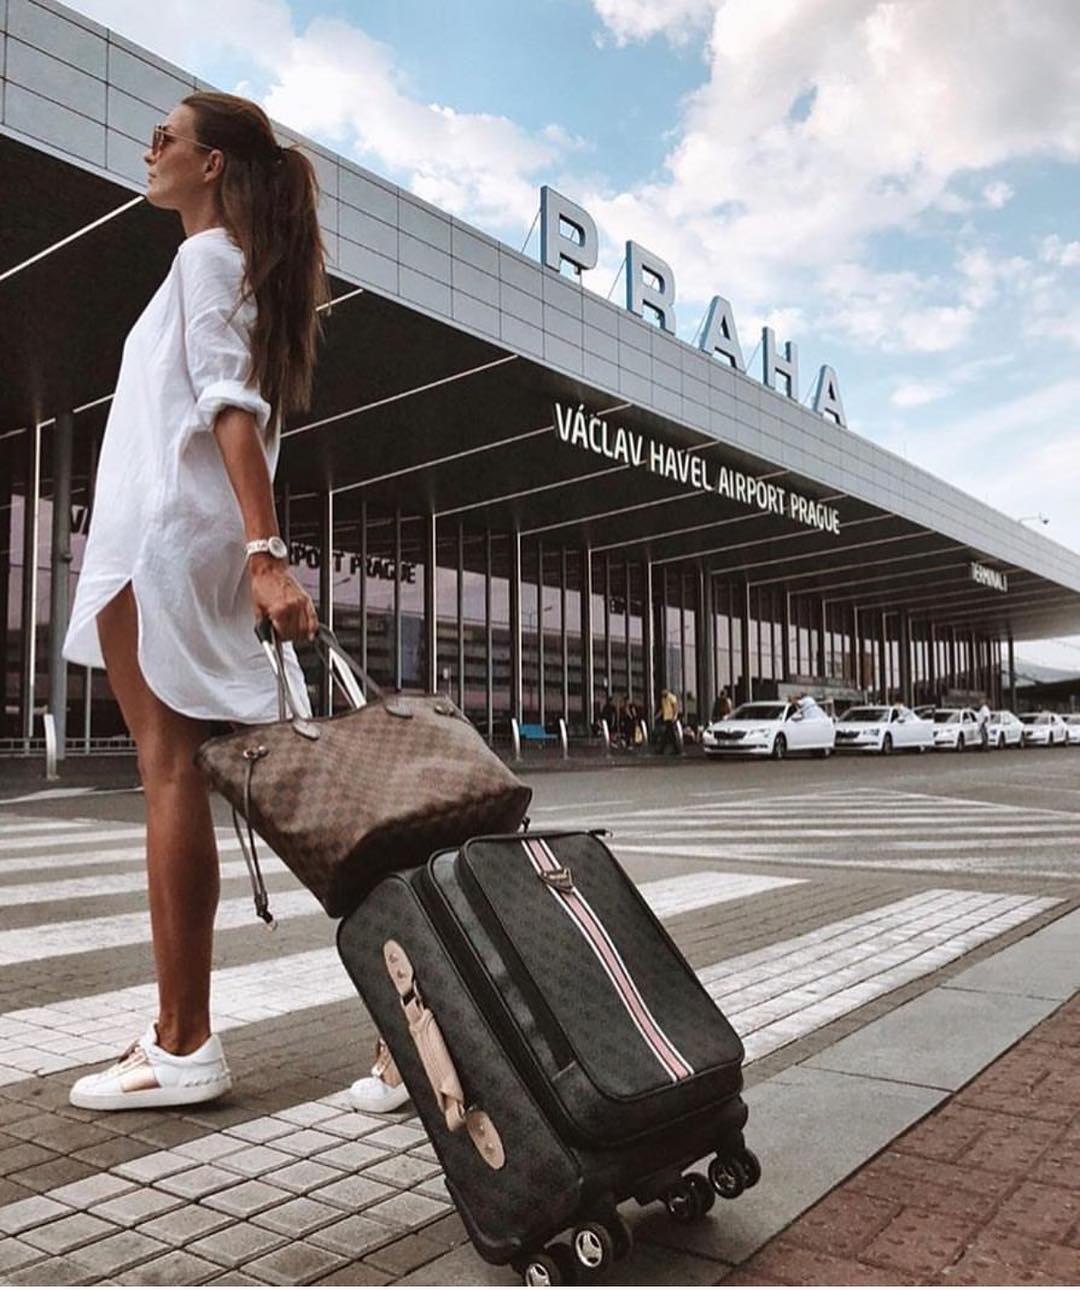 All White Airport Outfit Idea For Summer: White Shirtdress And White Kicks 2019